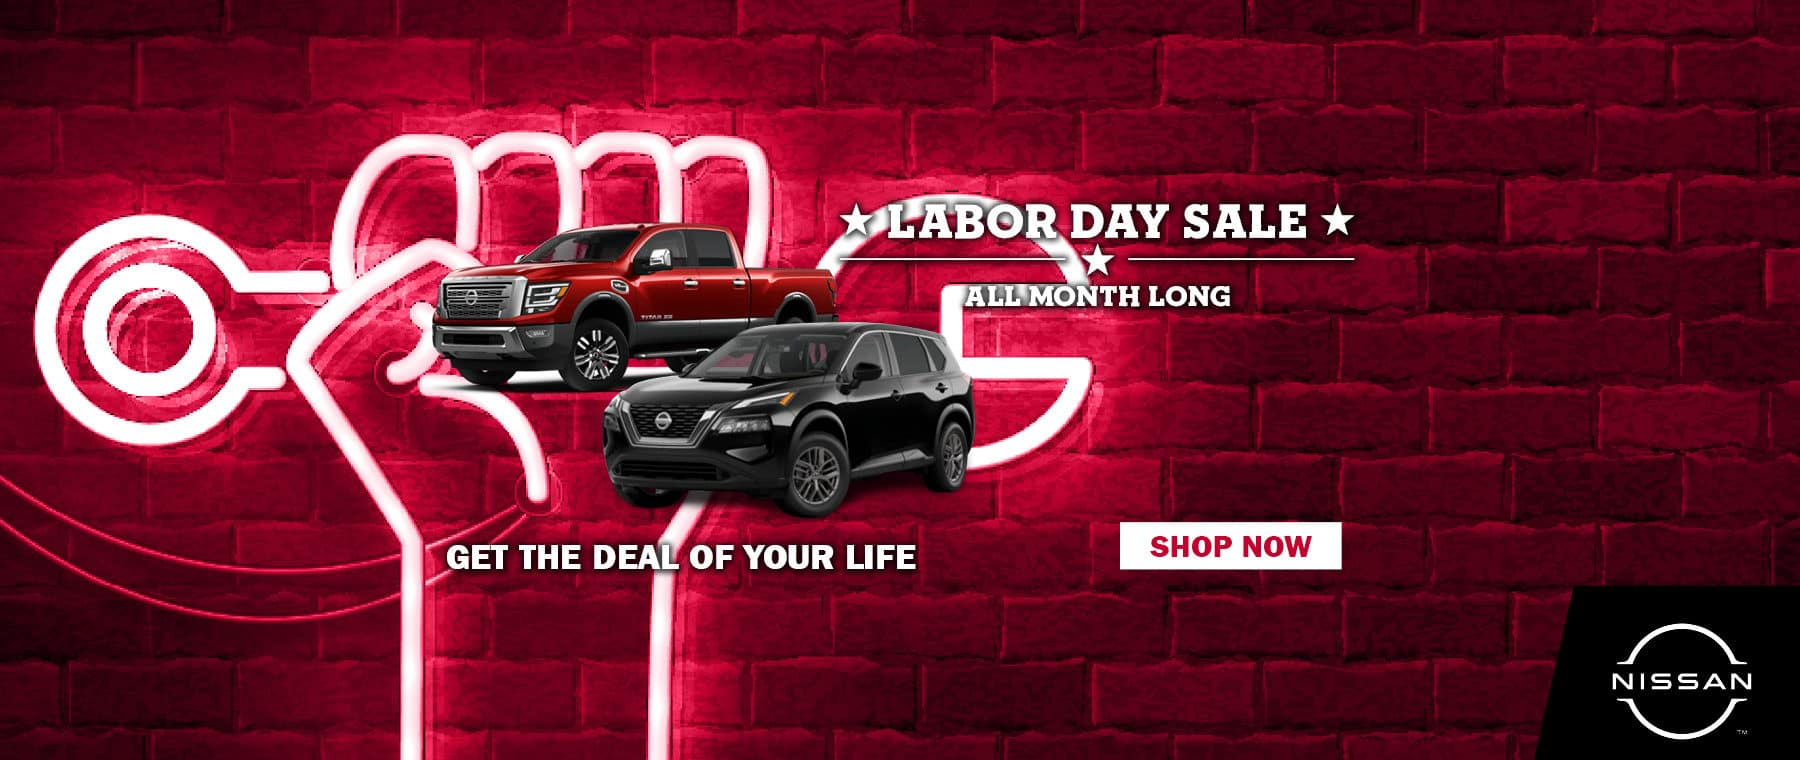 Labor Day Sale All Month Long